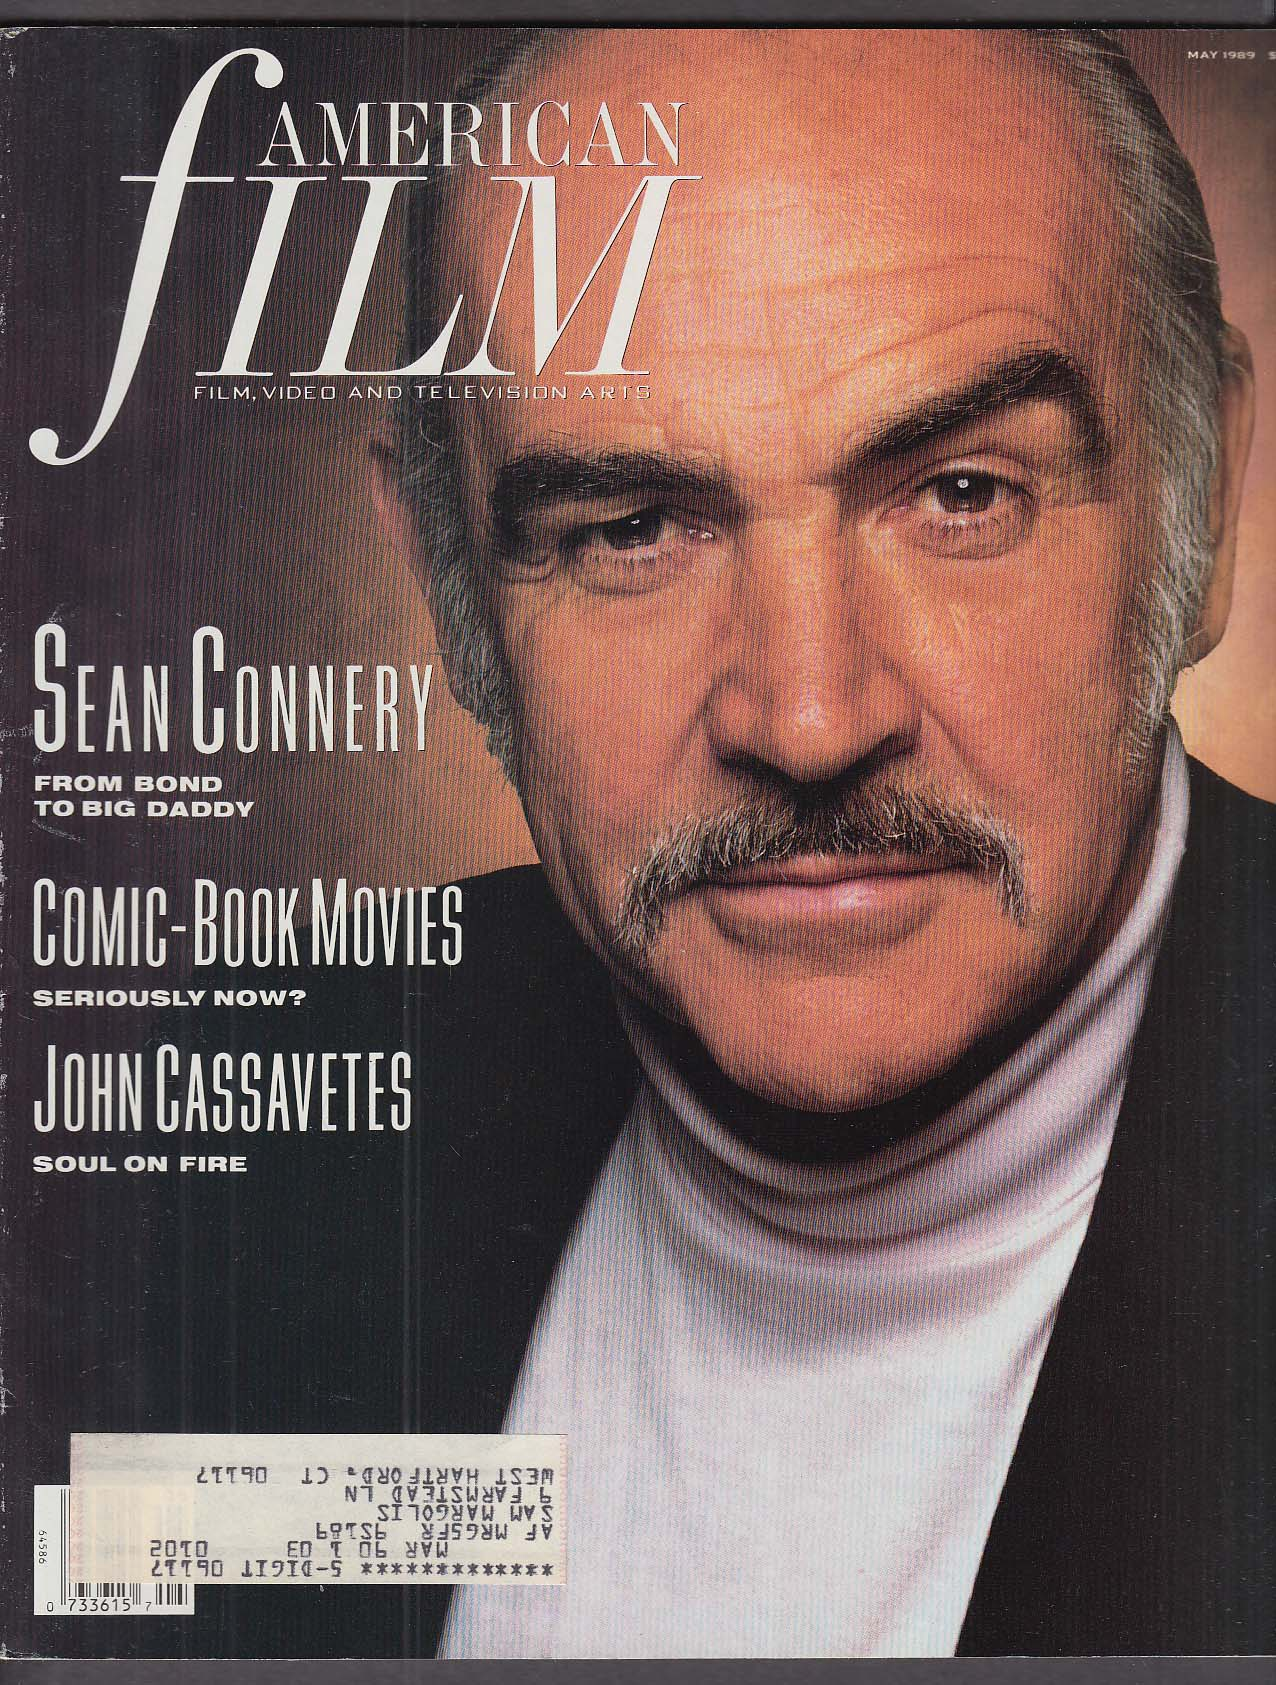 Image for AMERICAN FILM Sean Connery John Cassavetes Comic book movies 5 1989